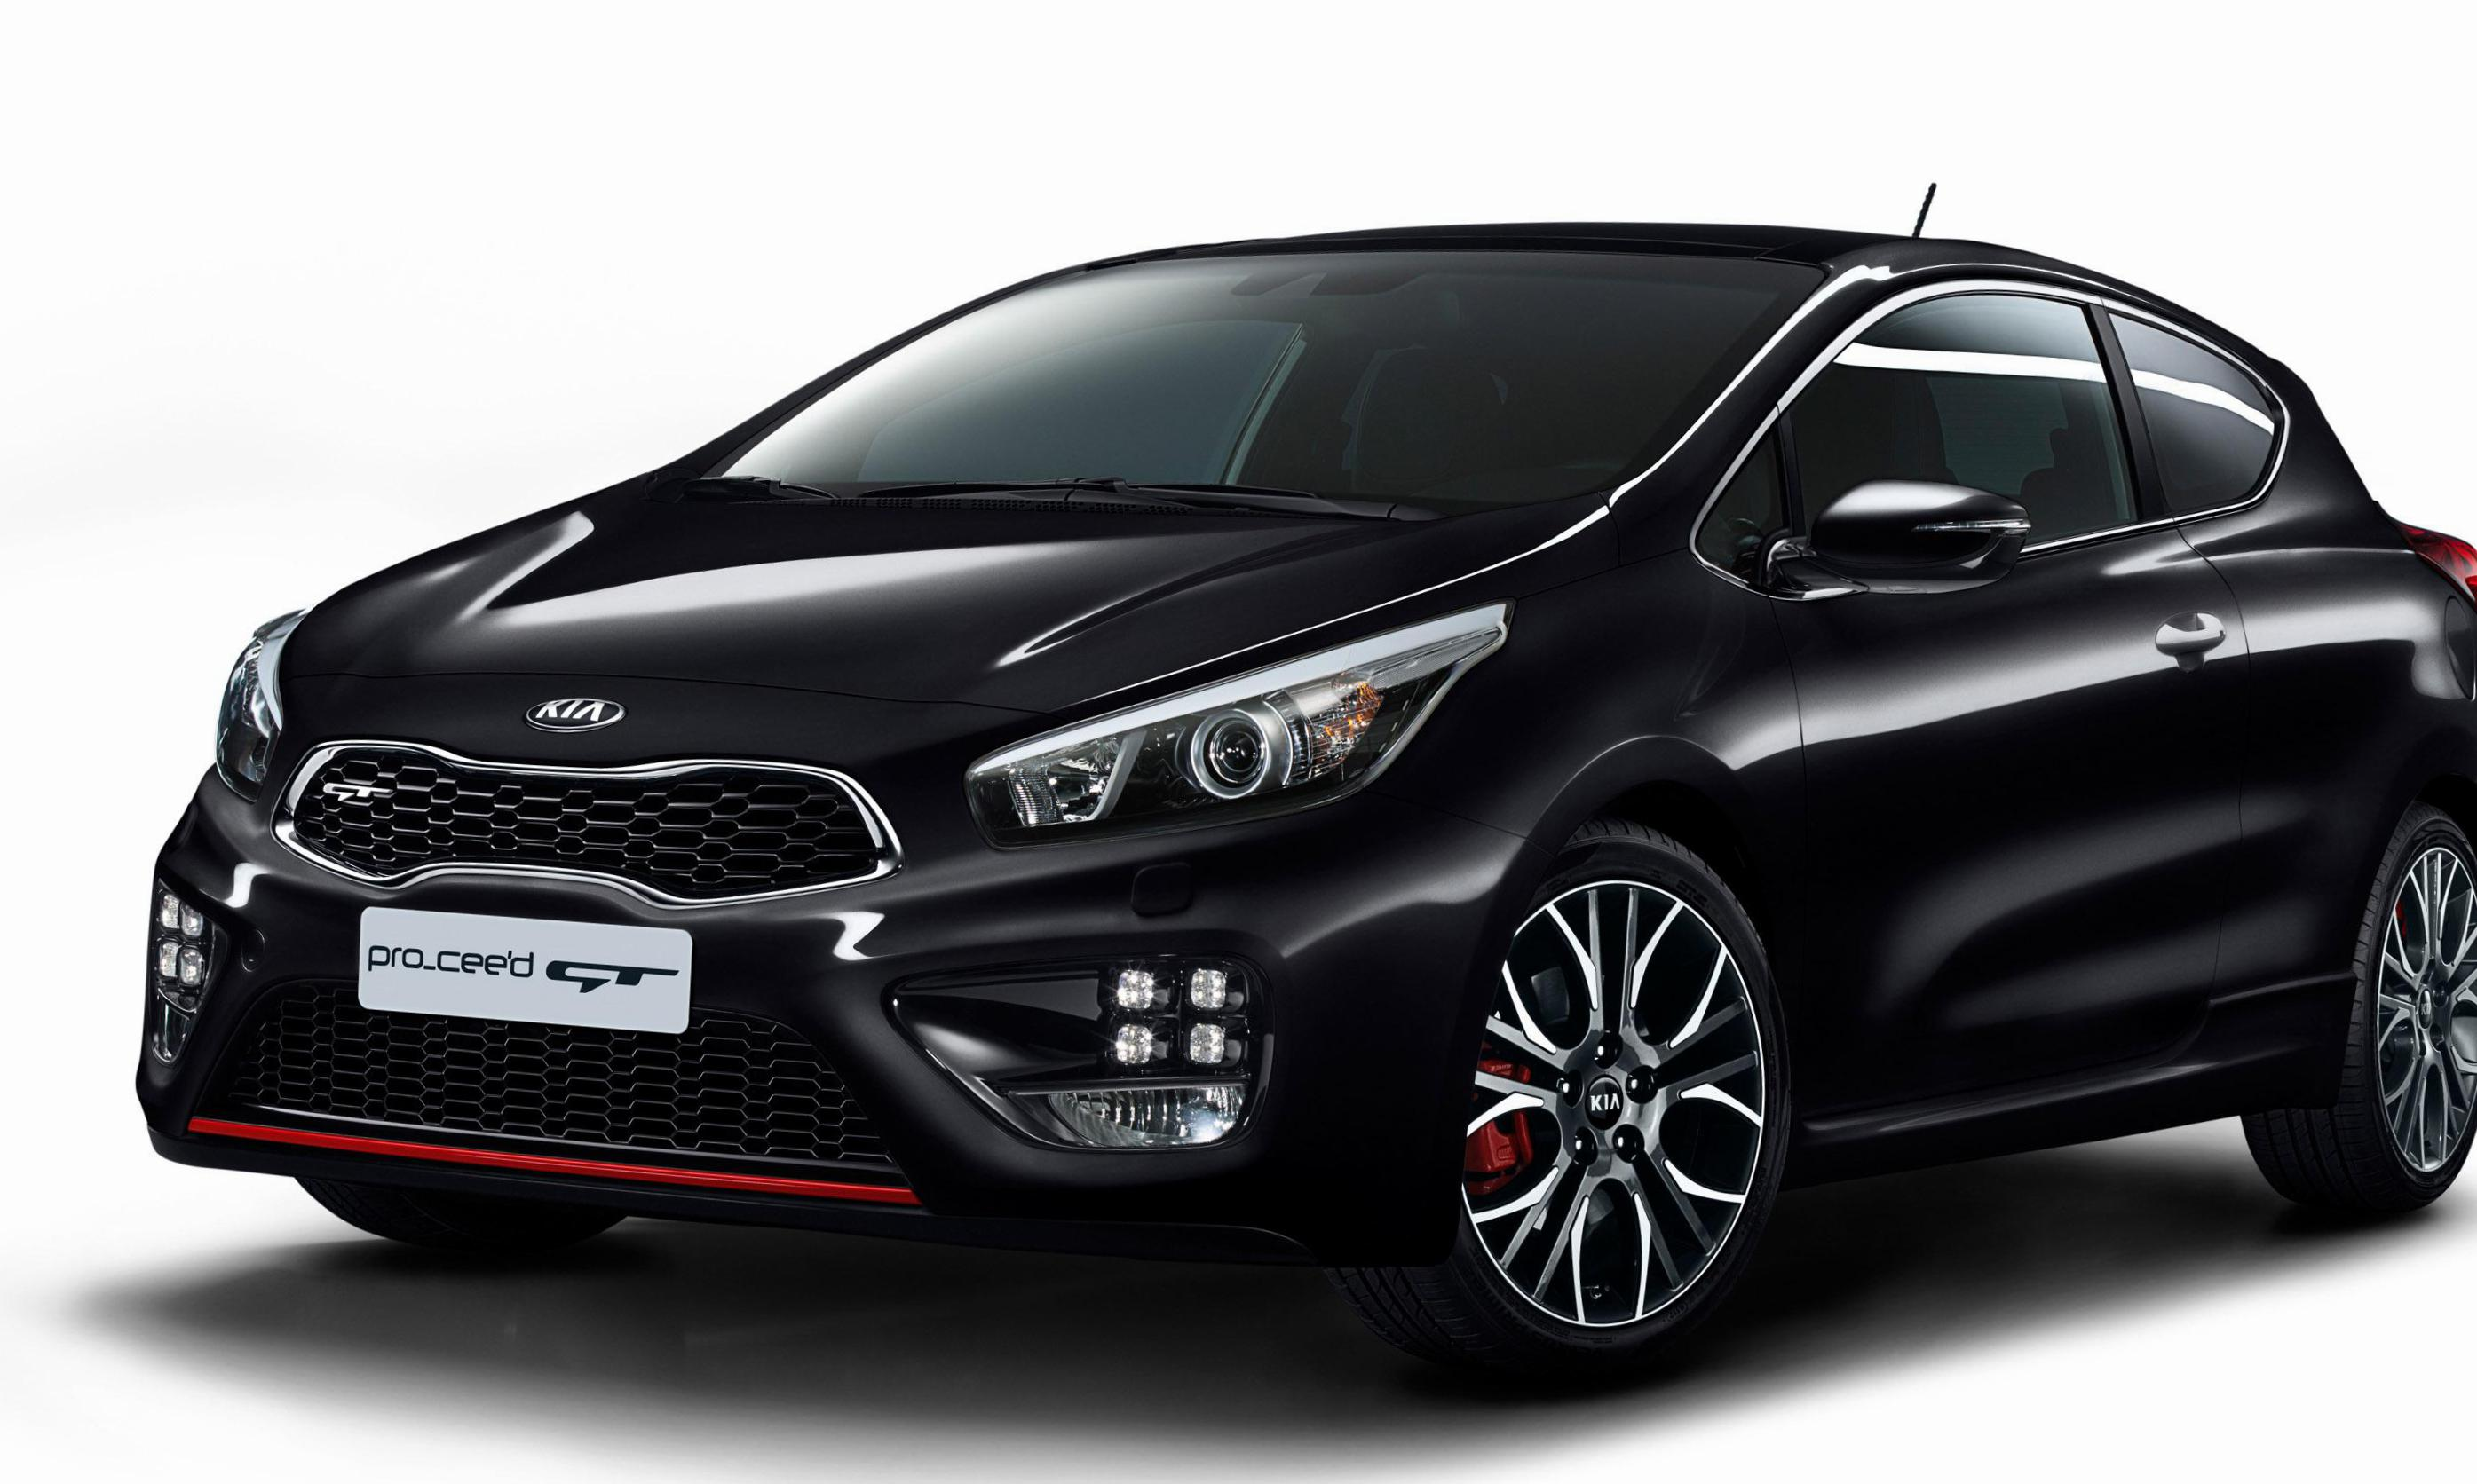 Kia Pro Ceed Gt Photos And Specs Photo Approved 2010